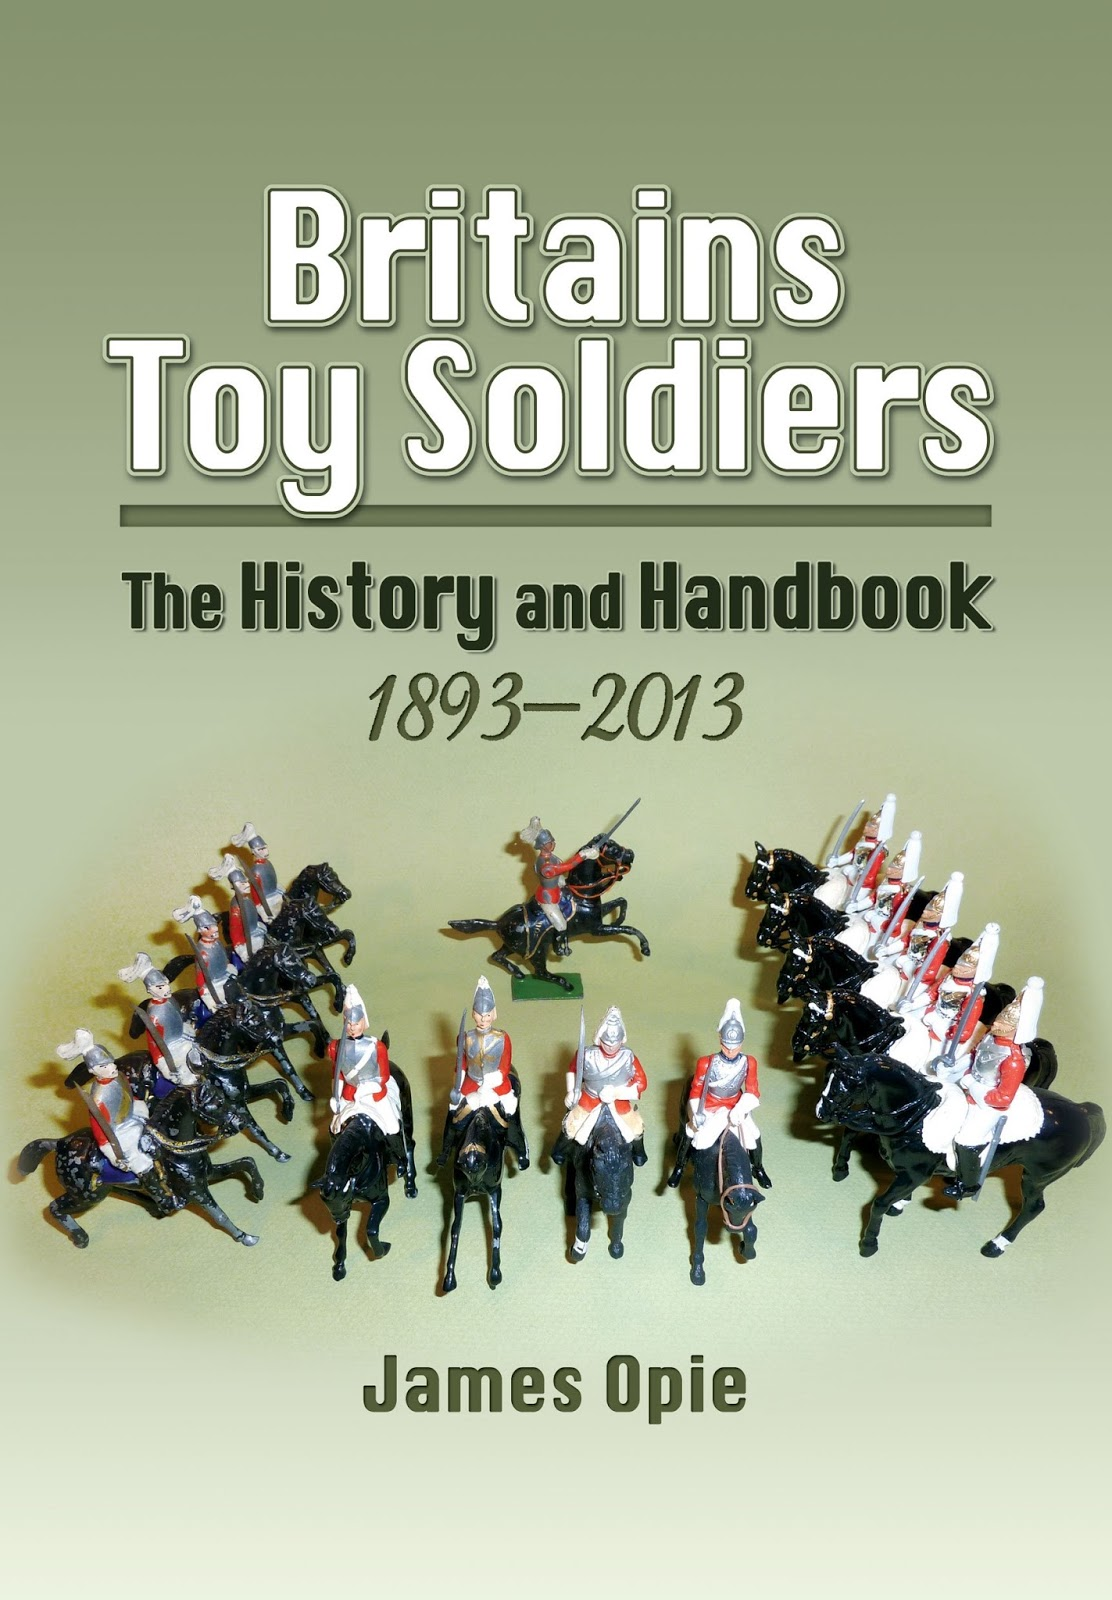 Britains Toy Soldier Collection Mini Brochure 64 Pages NEW 2009 W